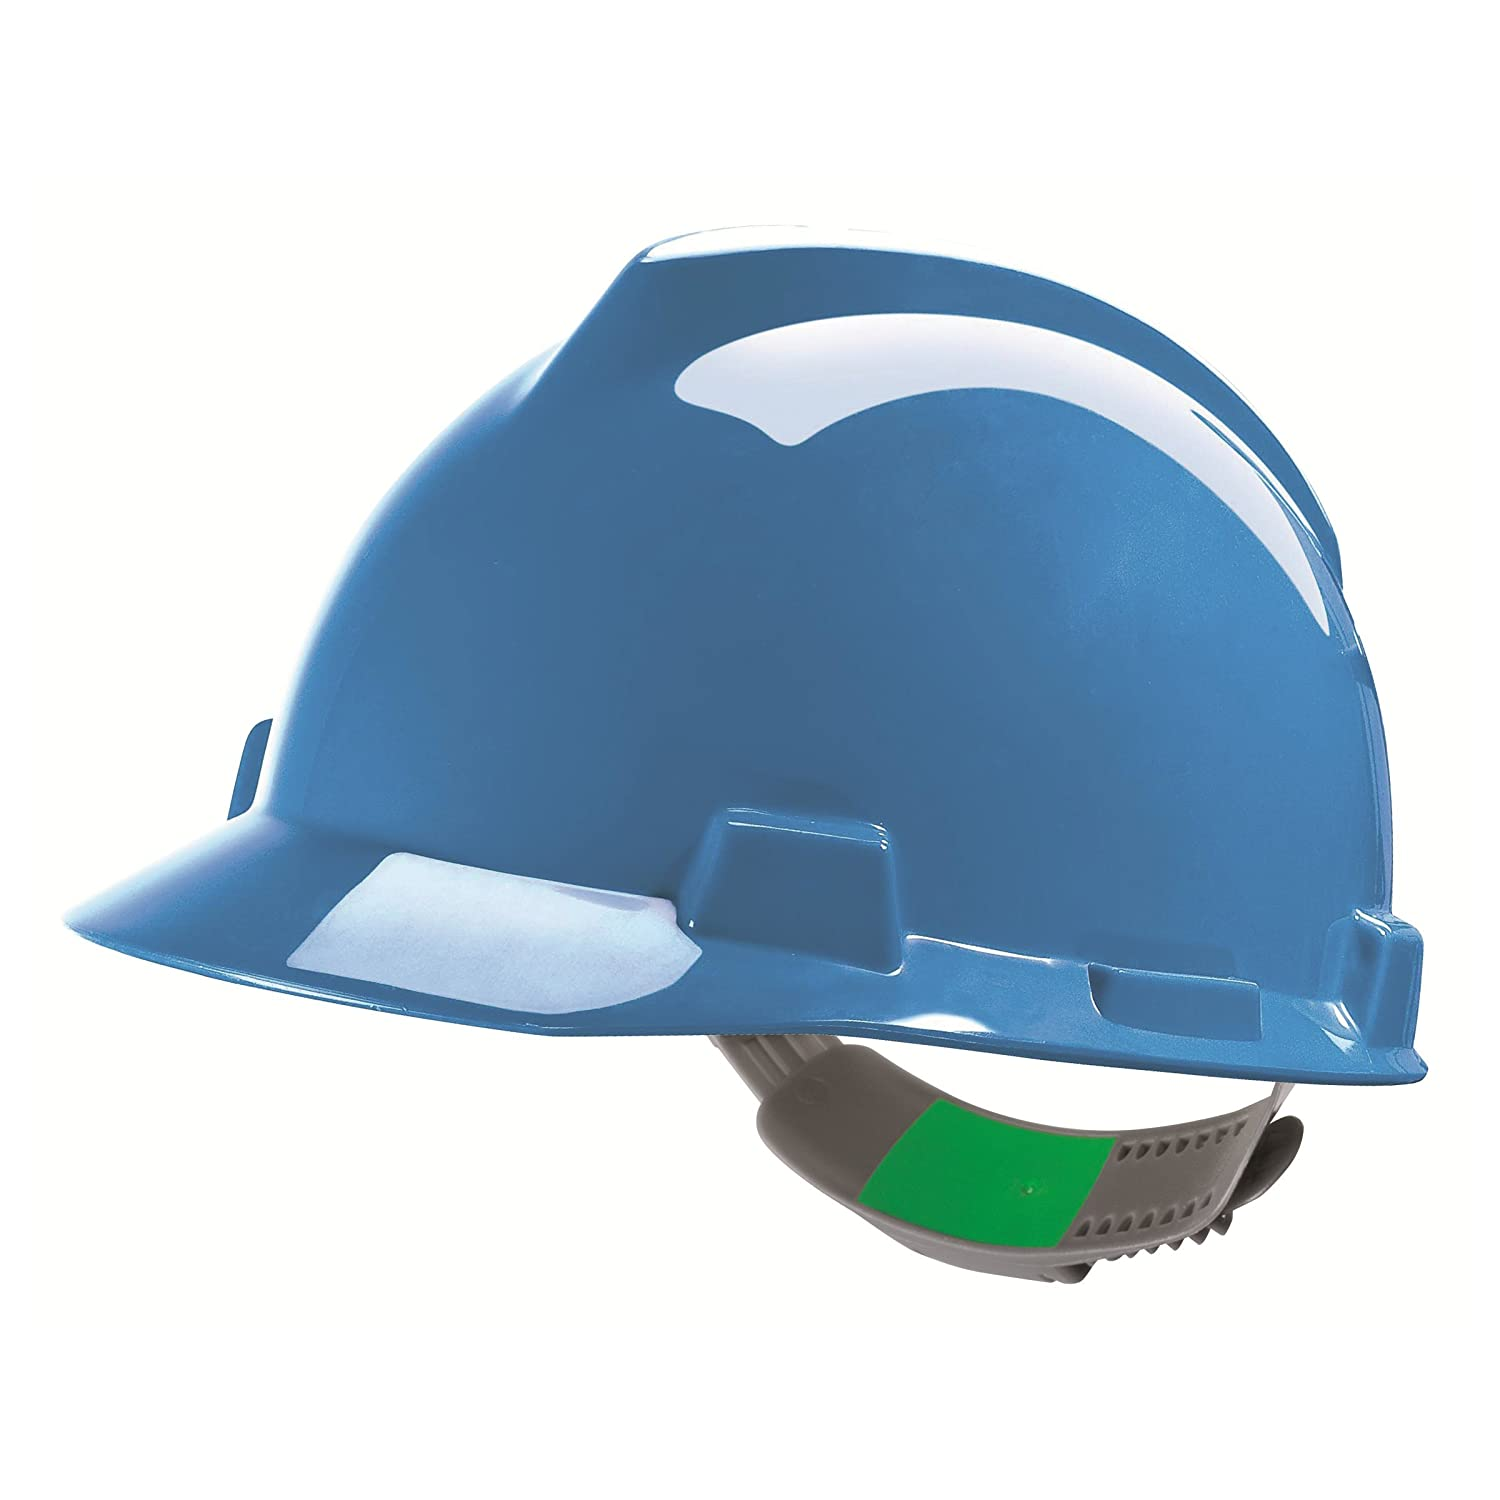 MSA V Gard Helmet EN397  Builders Helmet Work Helmet Protective Helmet Available in Various Colours, Green MSA Safety